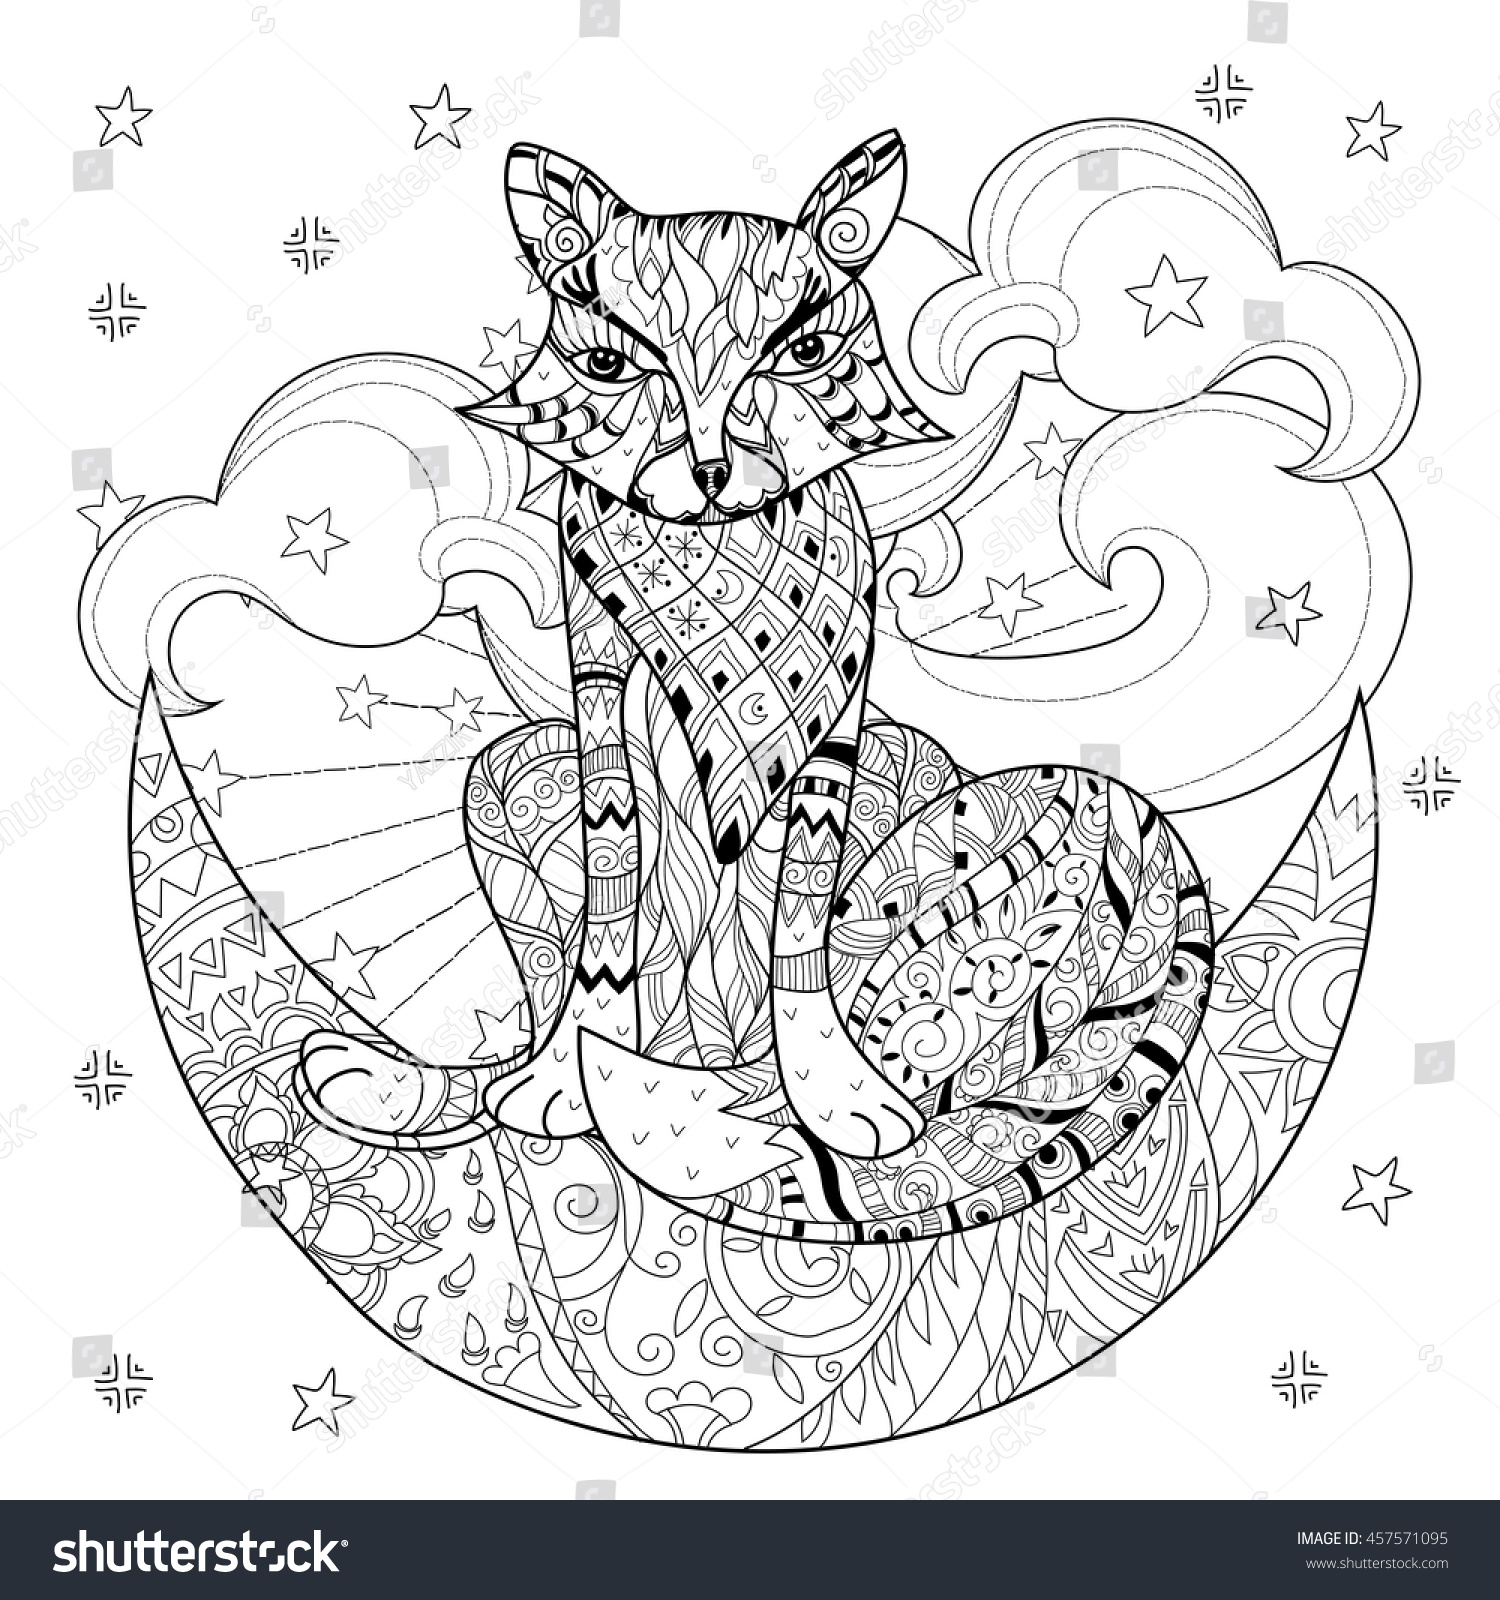 Cute fox on christmas half moon with stars Hand drawn doodle zen art.Adult anti stress coloring book or tattoo boho style